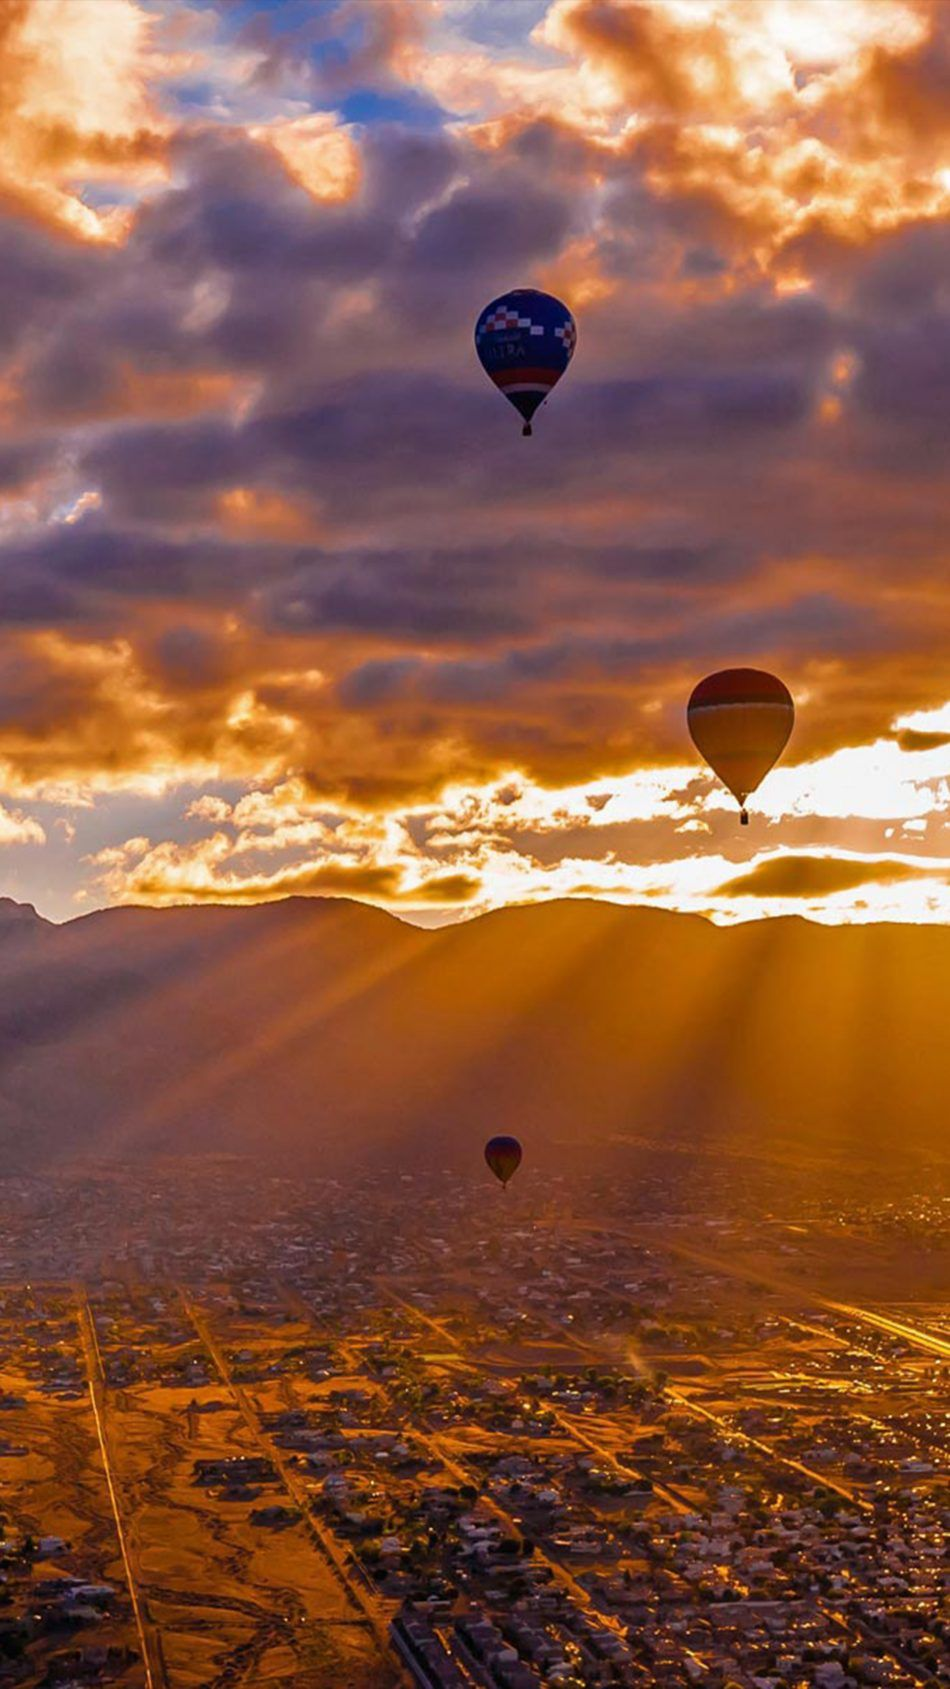 Hot Air Balloons Clouds Sunset Balloon Clouds Air Balloon Air